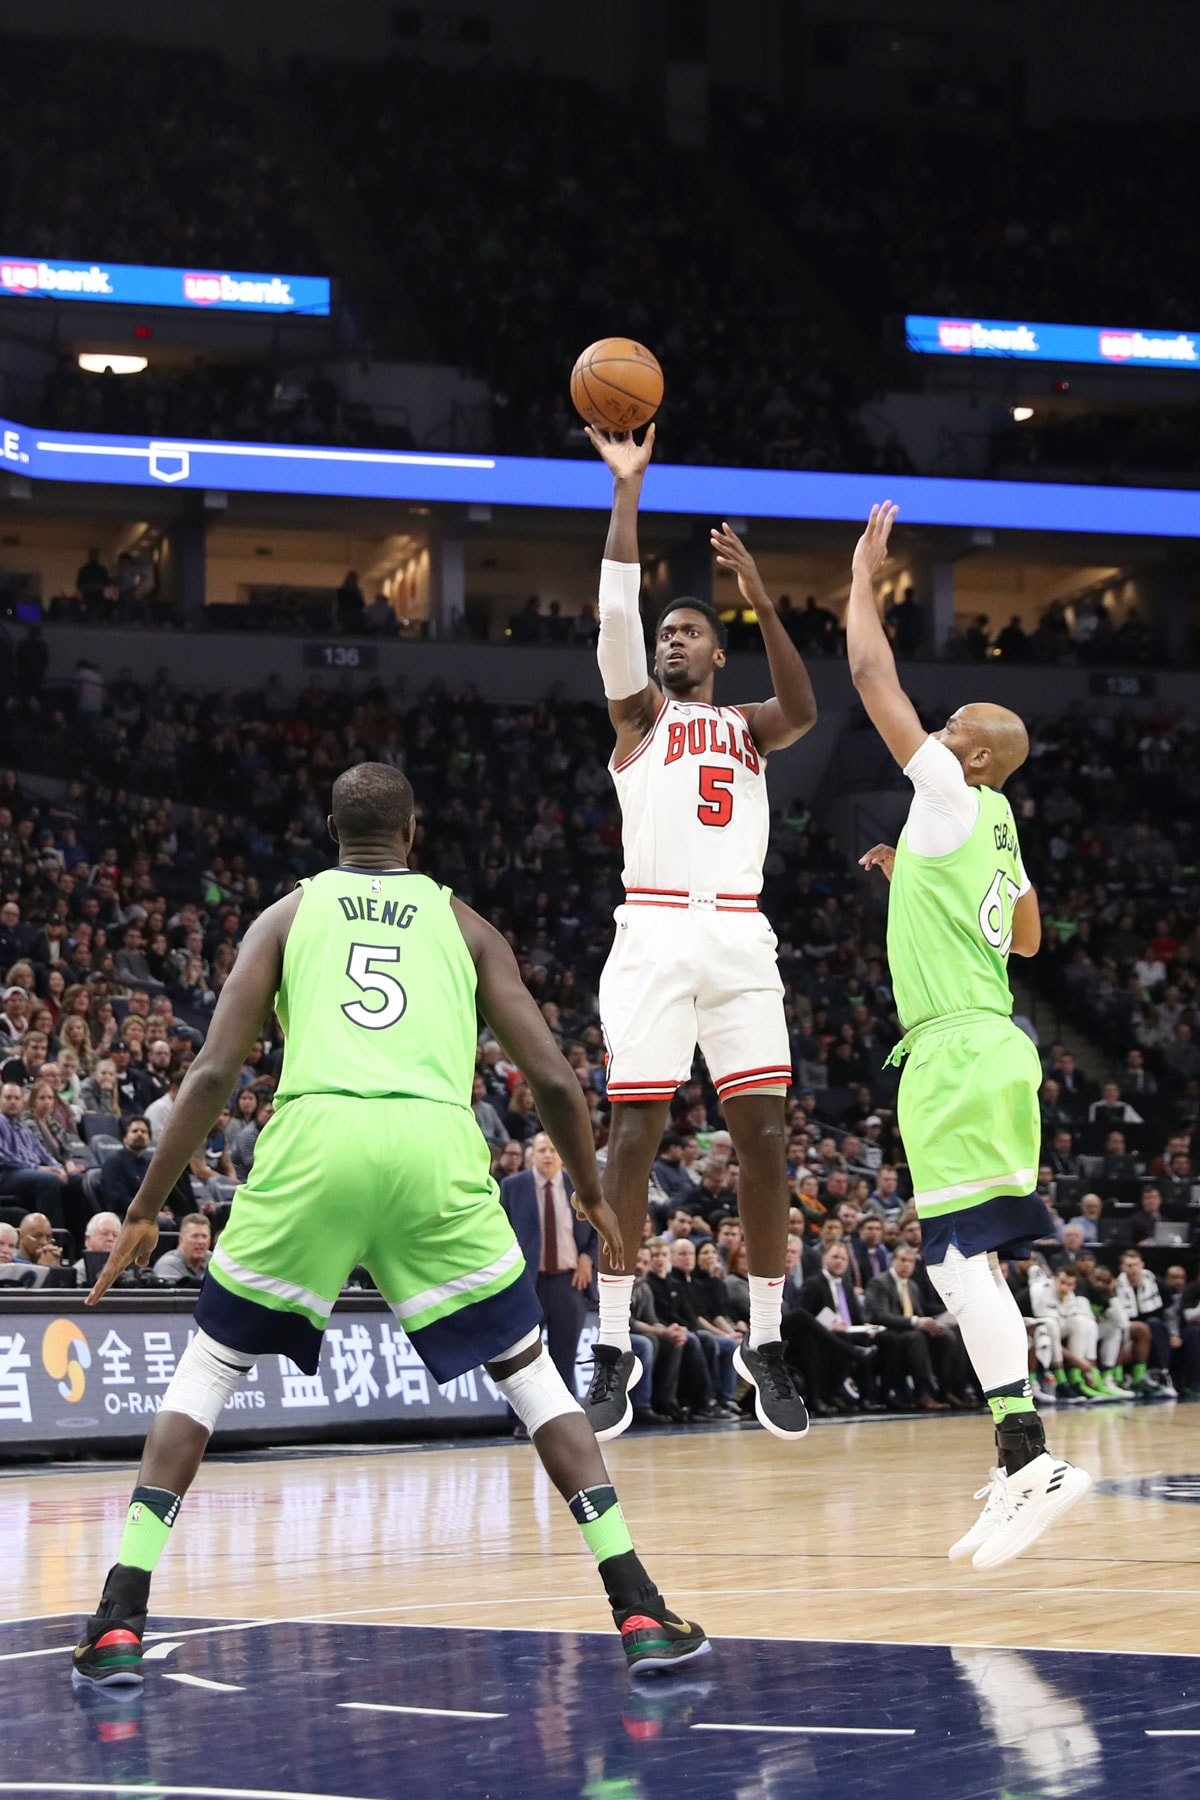 Bobby Portis #5 of the Chicago Bulls shoots the ball during the game against the Minnesota Timberwolves